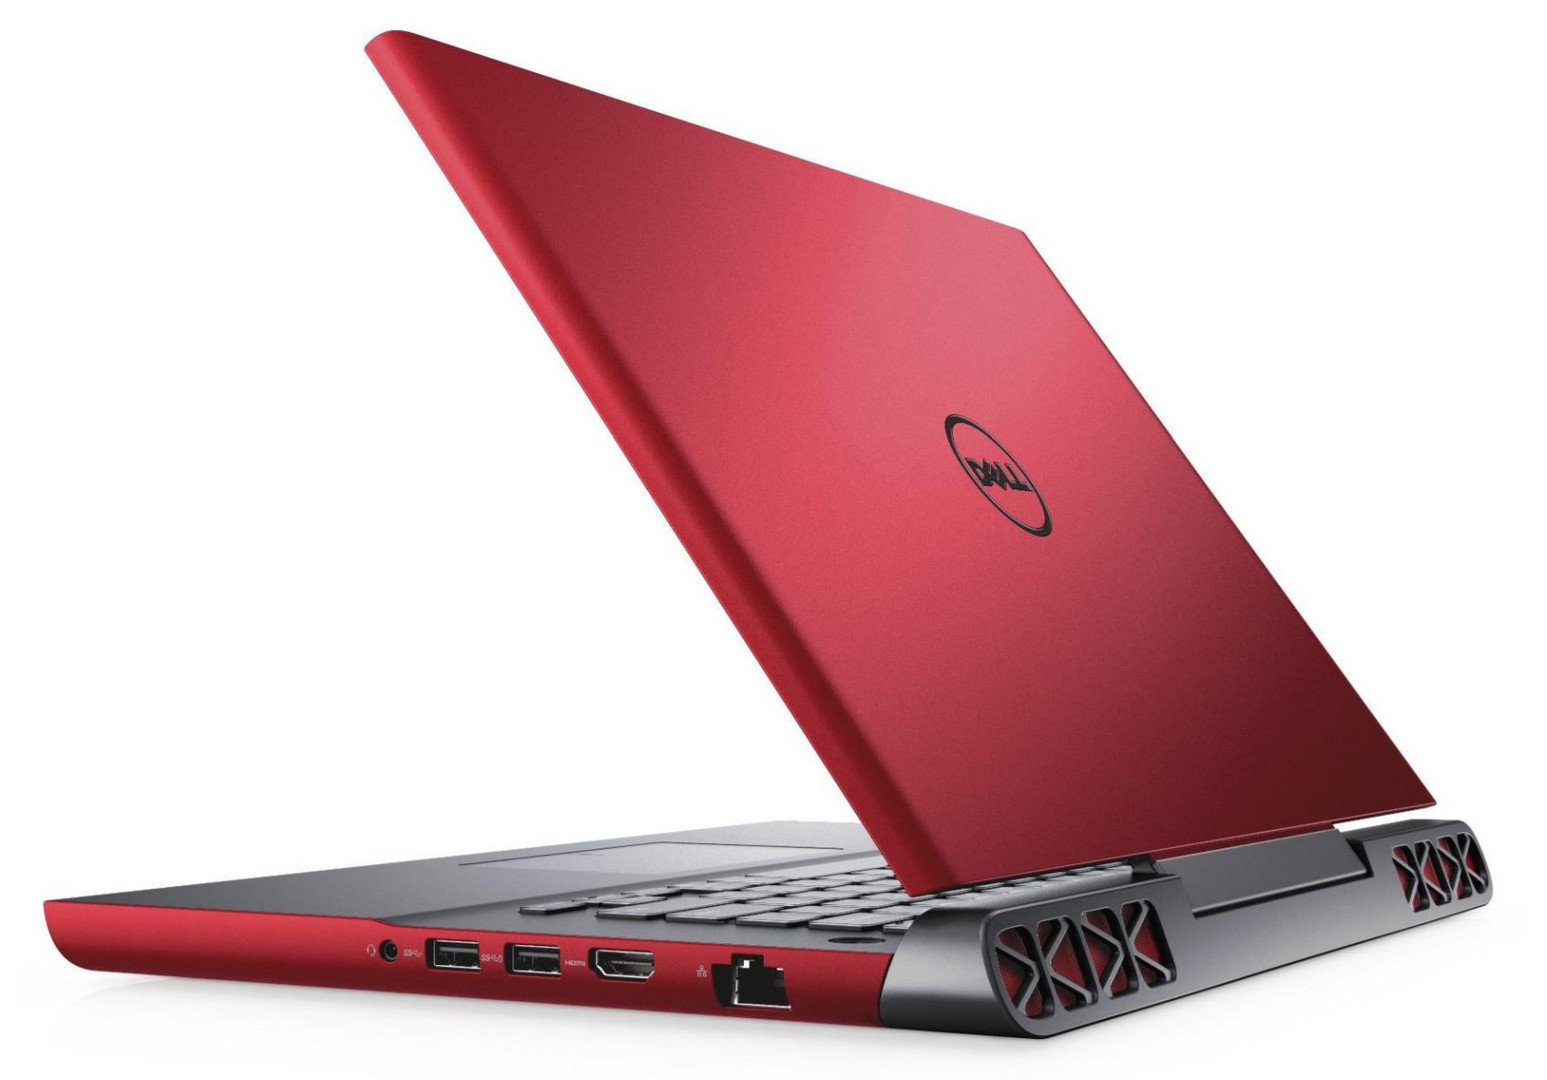 Dell Inspiron 15 7000 Notebookcheck Laptop 13 5370 Core I5 Pink 7566 1821